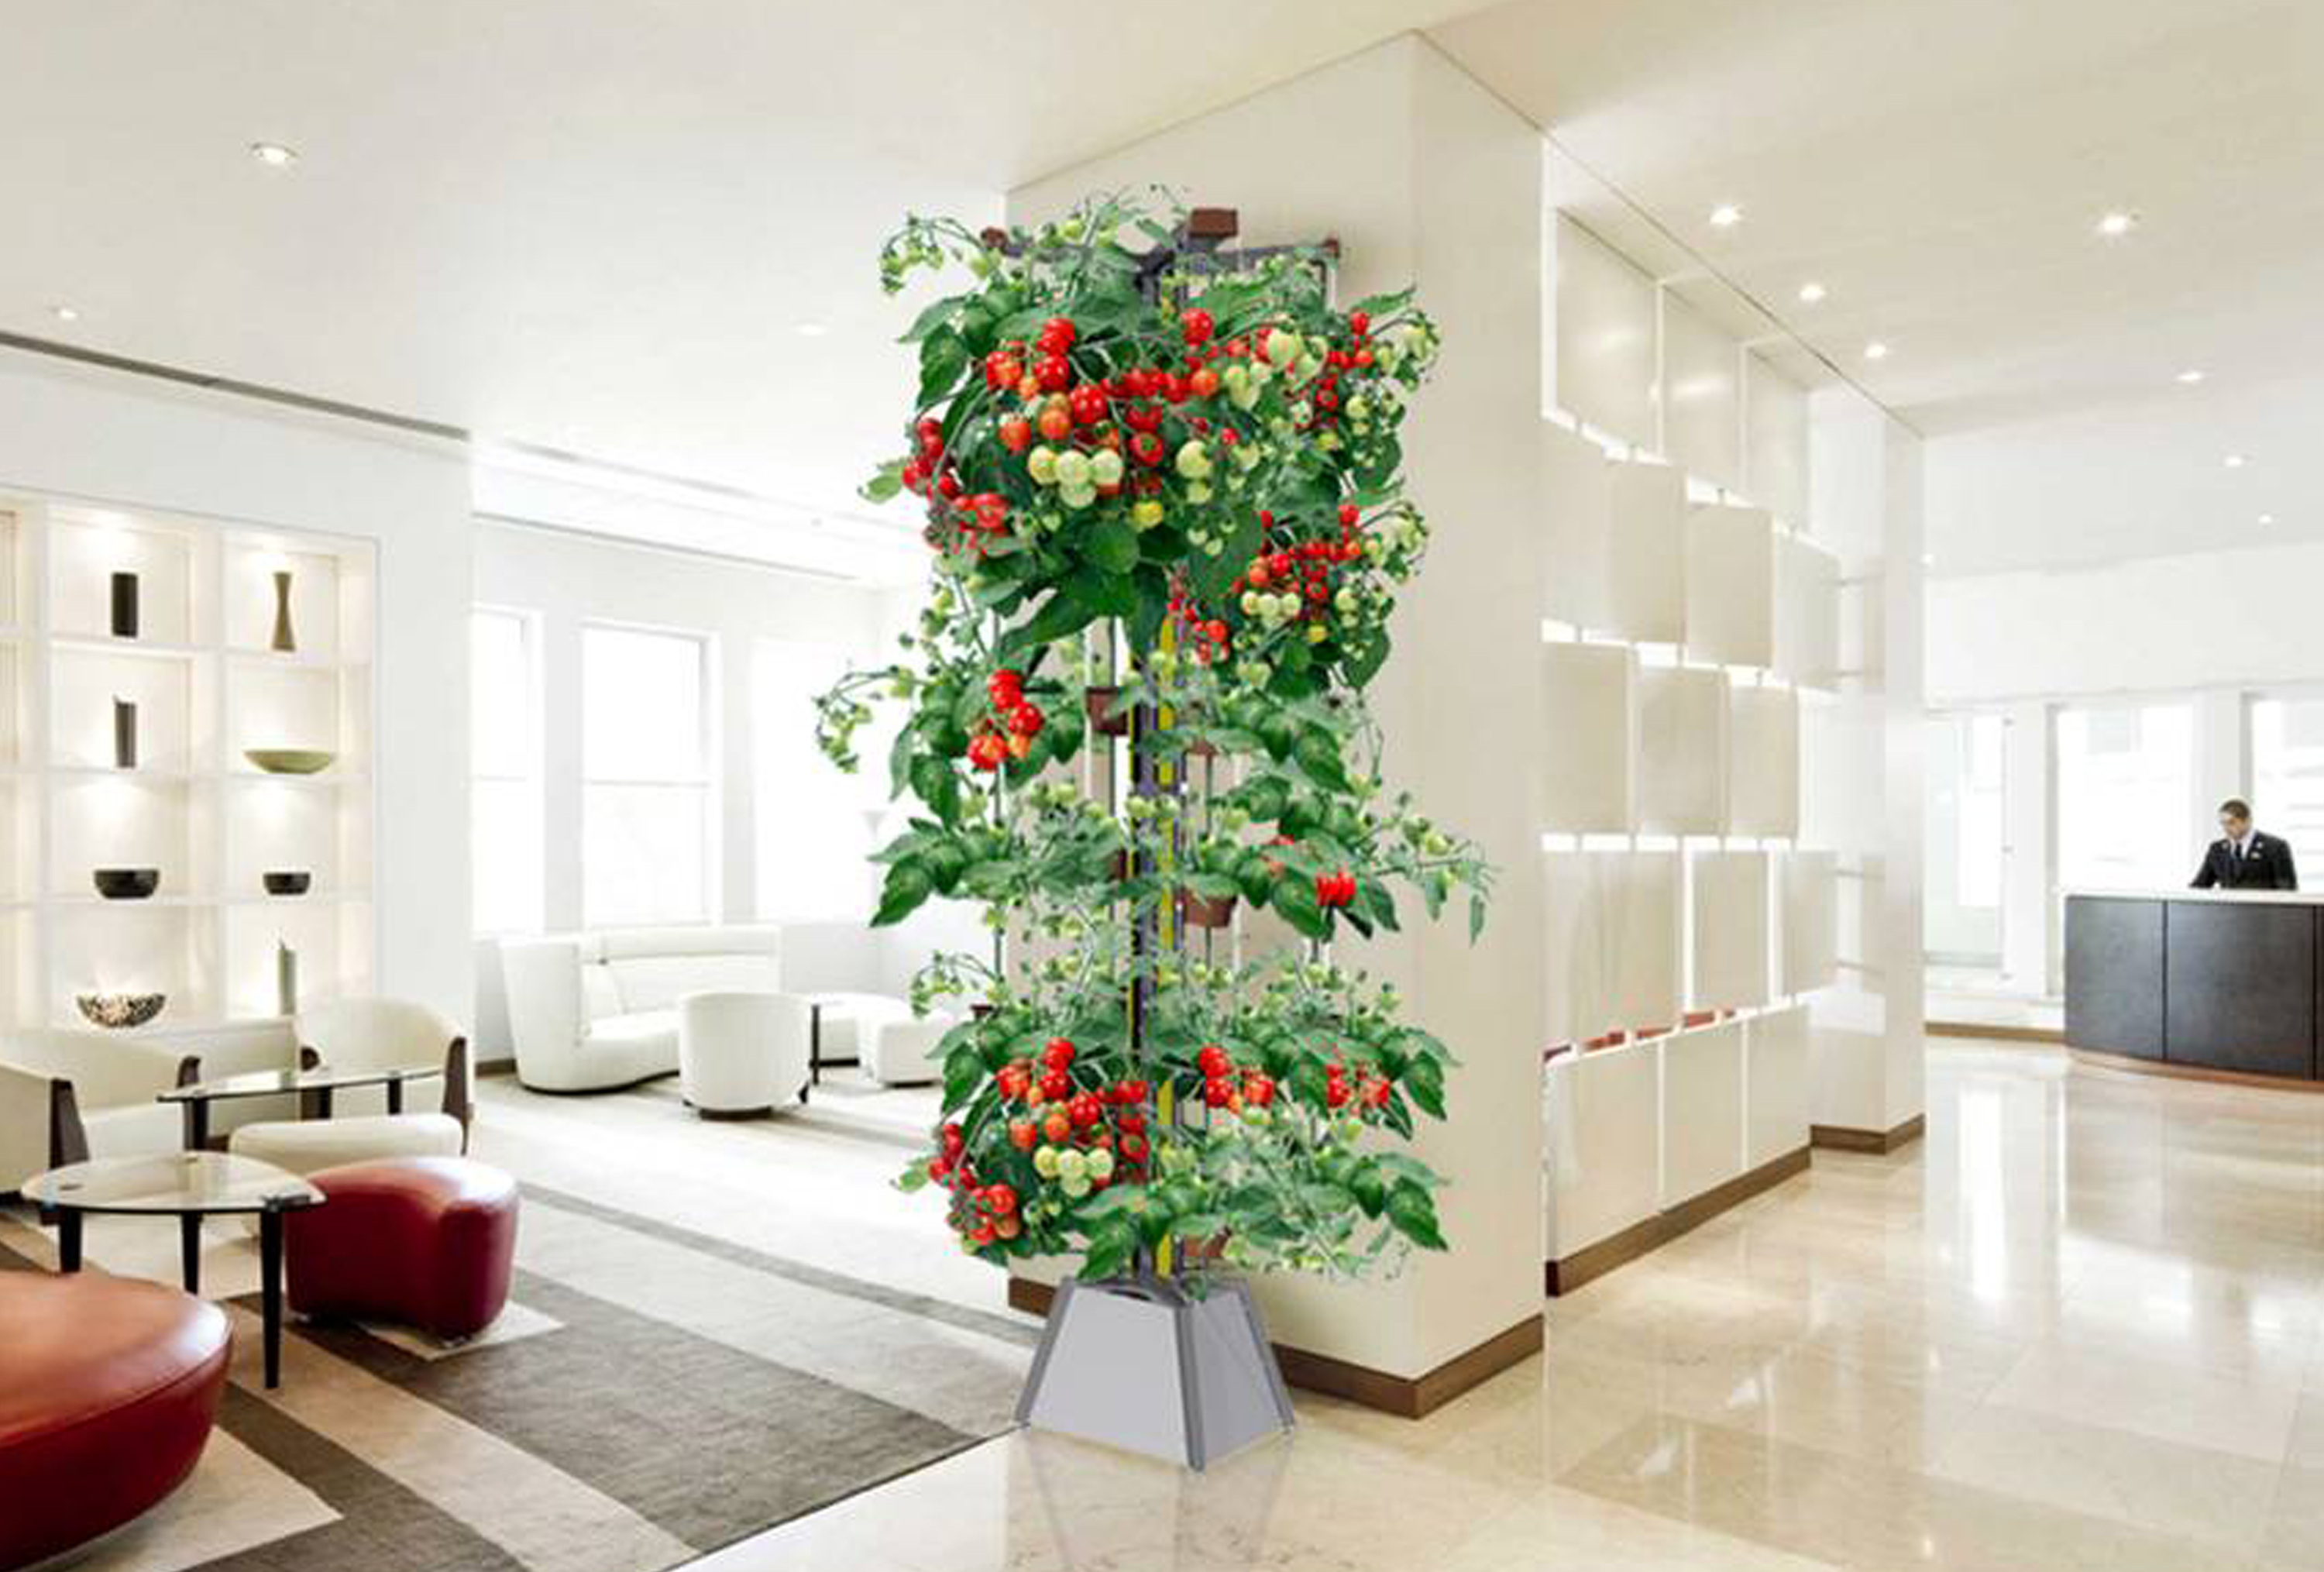 Home/Office Gardening System- Nutri-Tower